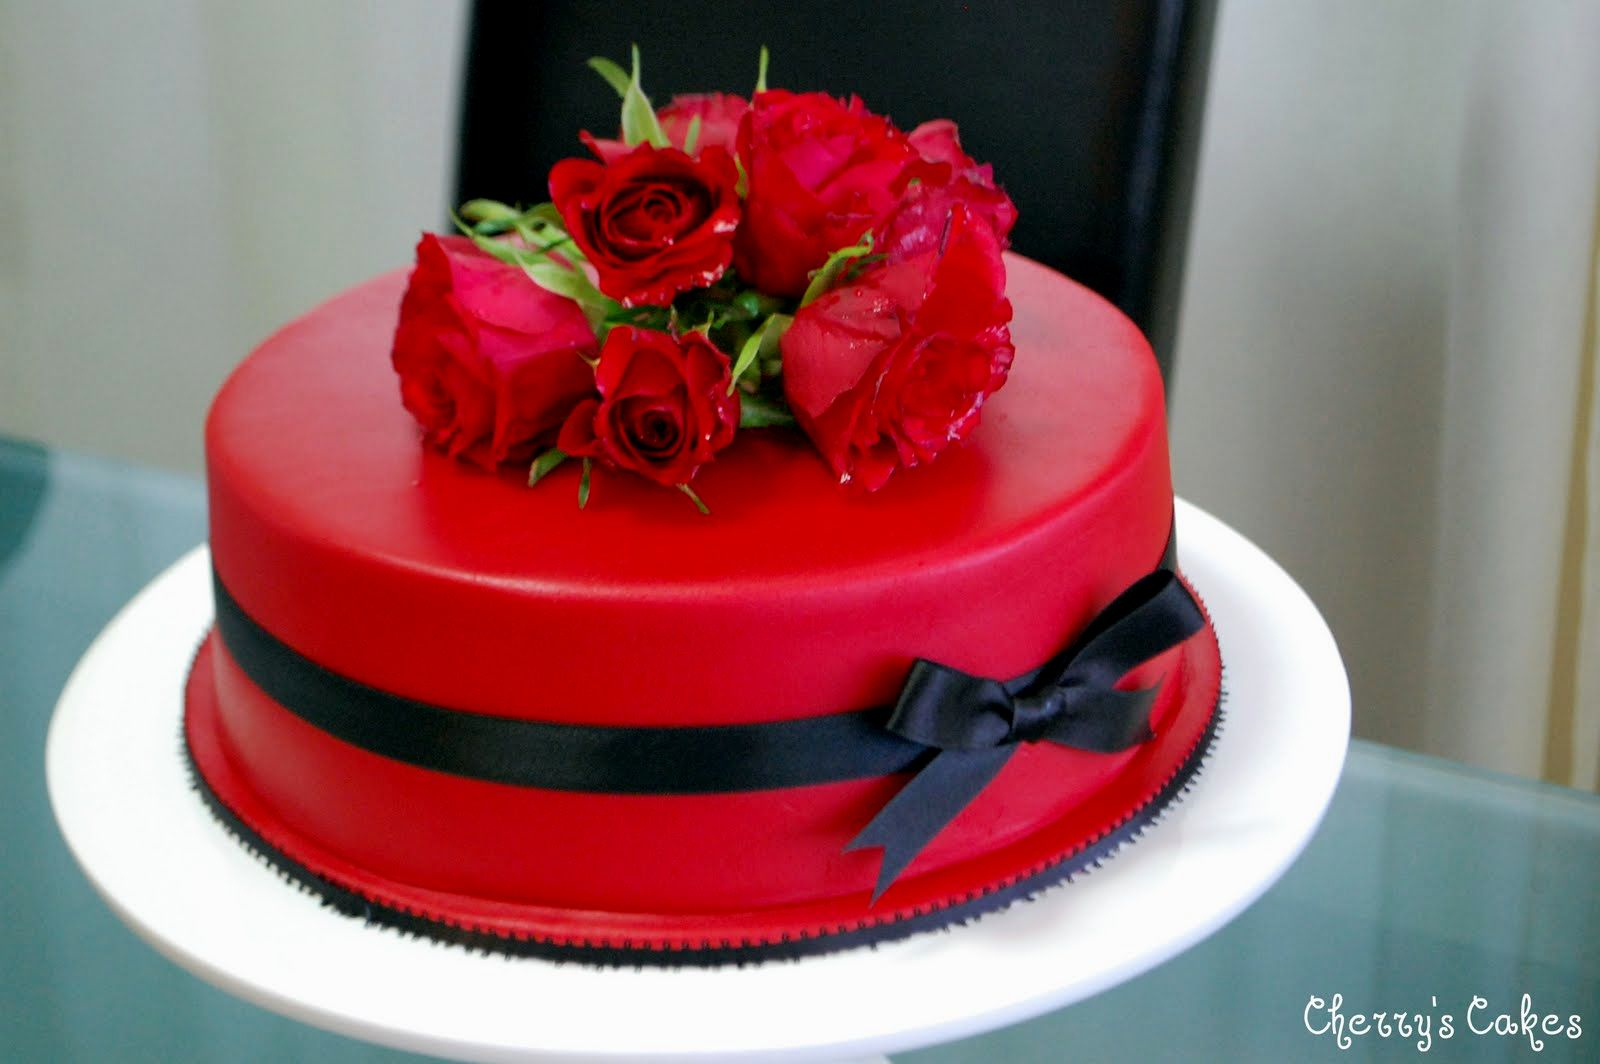 Red Birthday Cake Very Beautiful Cakes With Roses Homemade Party Design